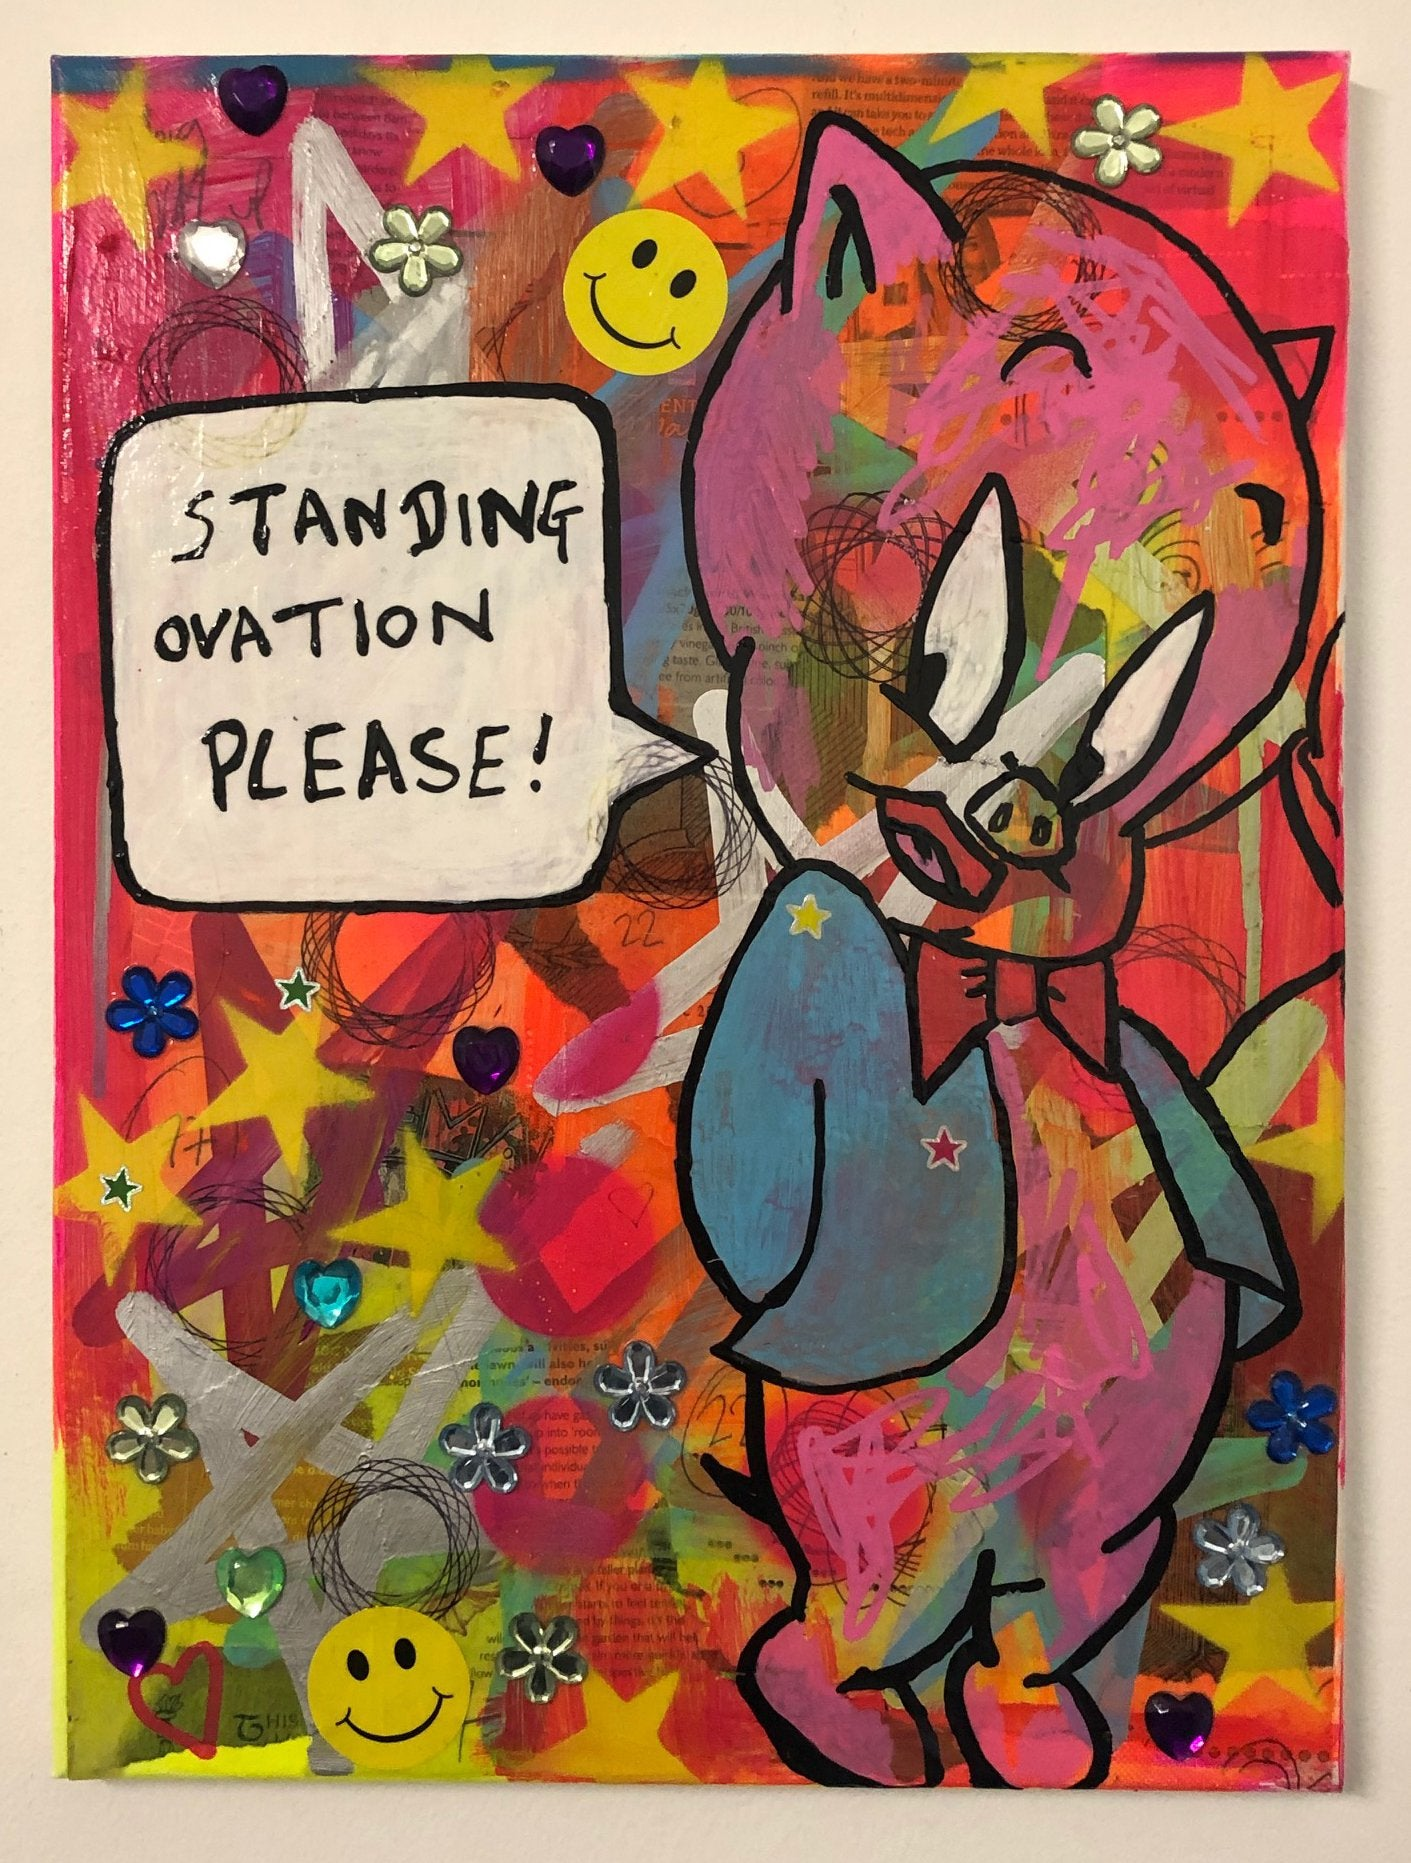 Clapping by Barrie J Davies 2020, mixed media on canvas, unframed, 30cm x 40cm. Barrie J Davies is an Artist - Pop Art and Street art inspired Artist based in Brighton England UK - Pop Art Paintings, Street Art Prints & Editions available